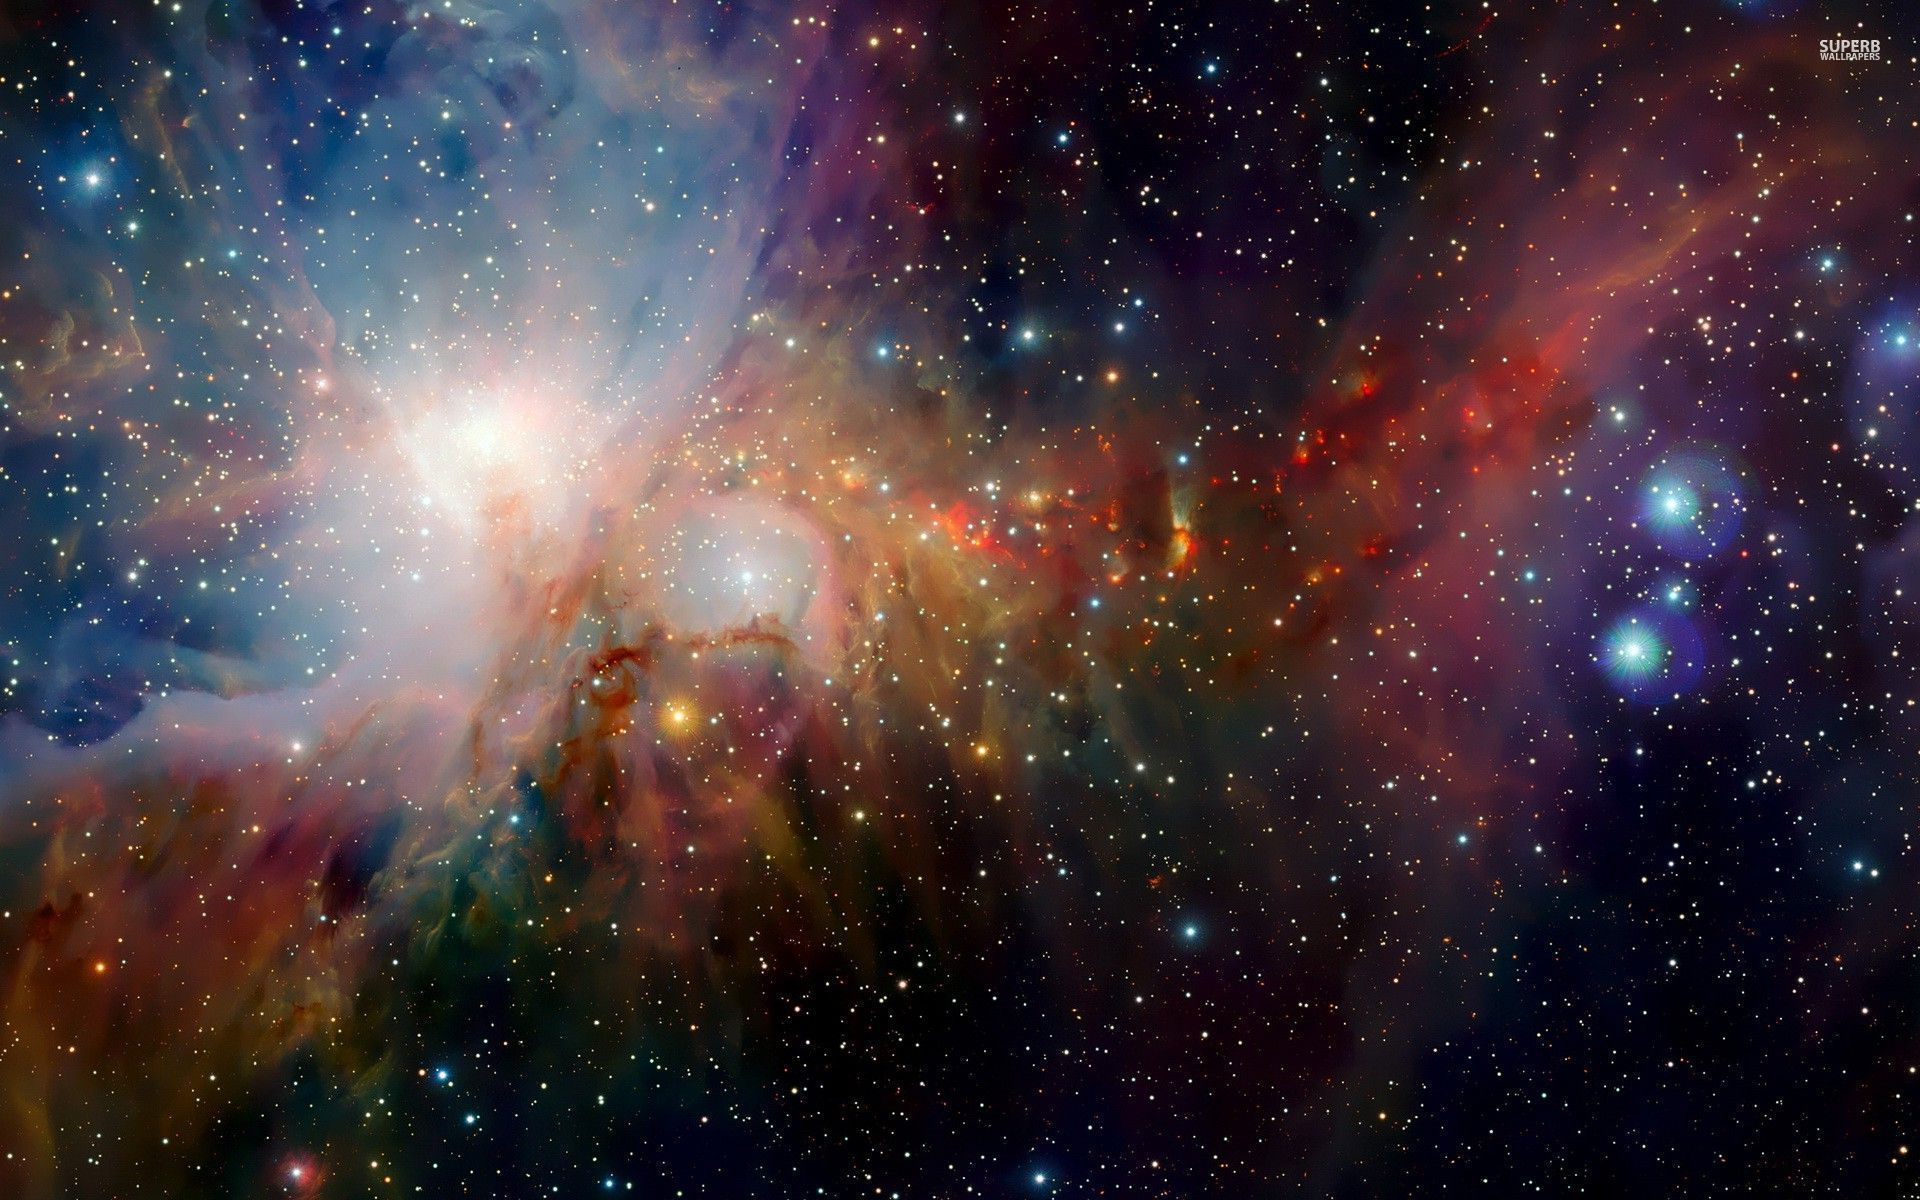 Colorful nebula wallpaper 1920x1200 jpg